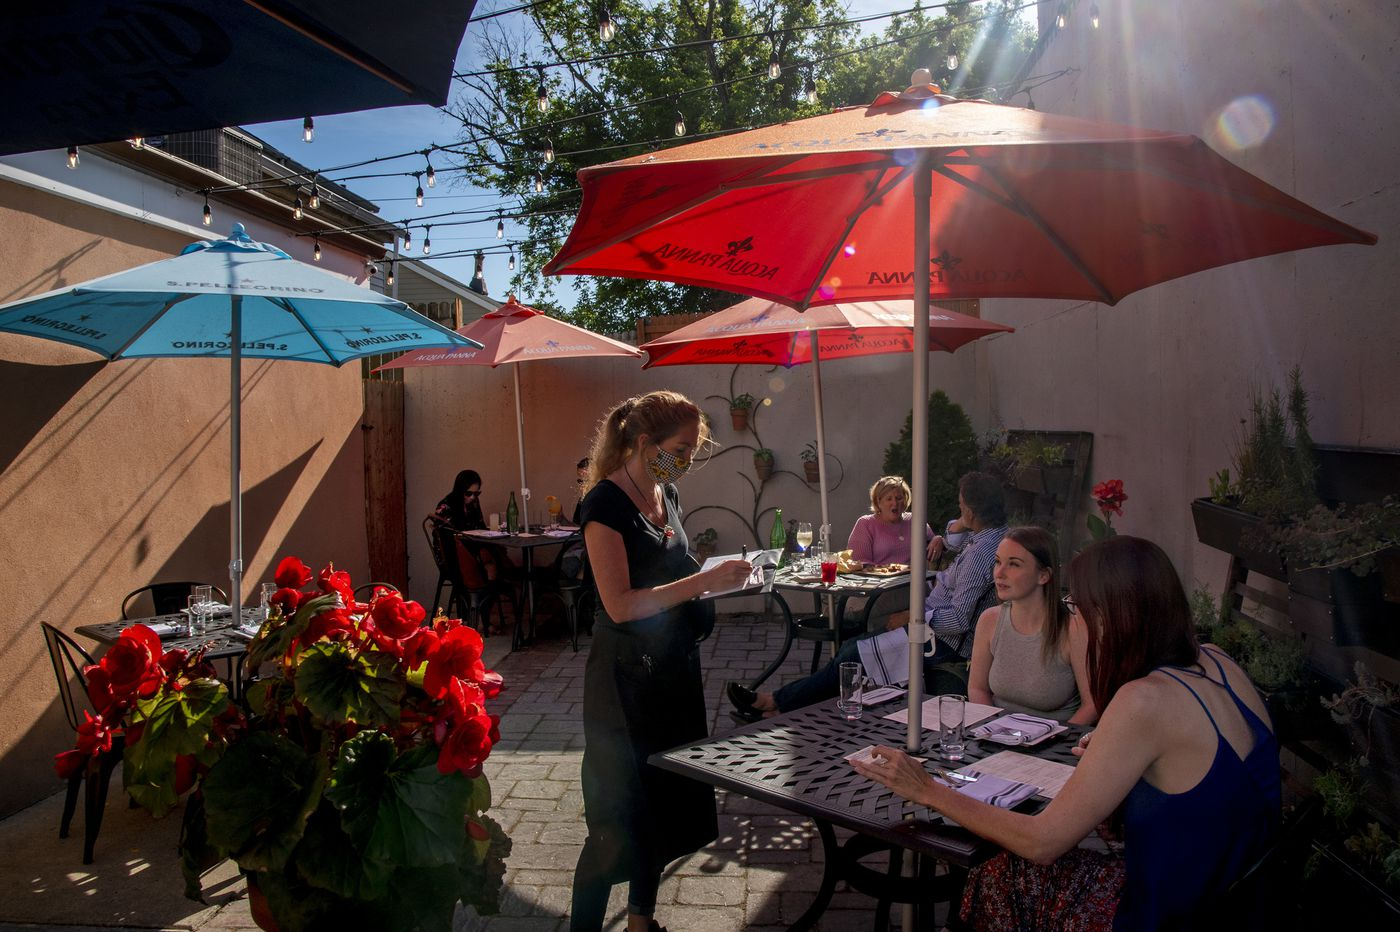 Outdoor dining to start in Philly and New Jersey, as caution still urged against COVID-19